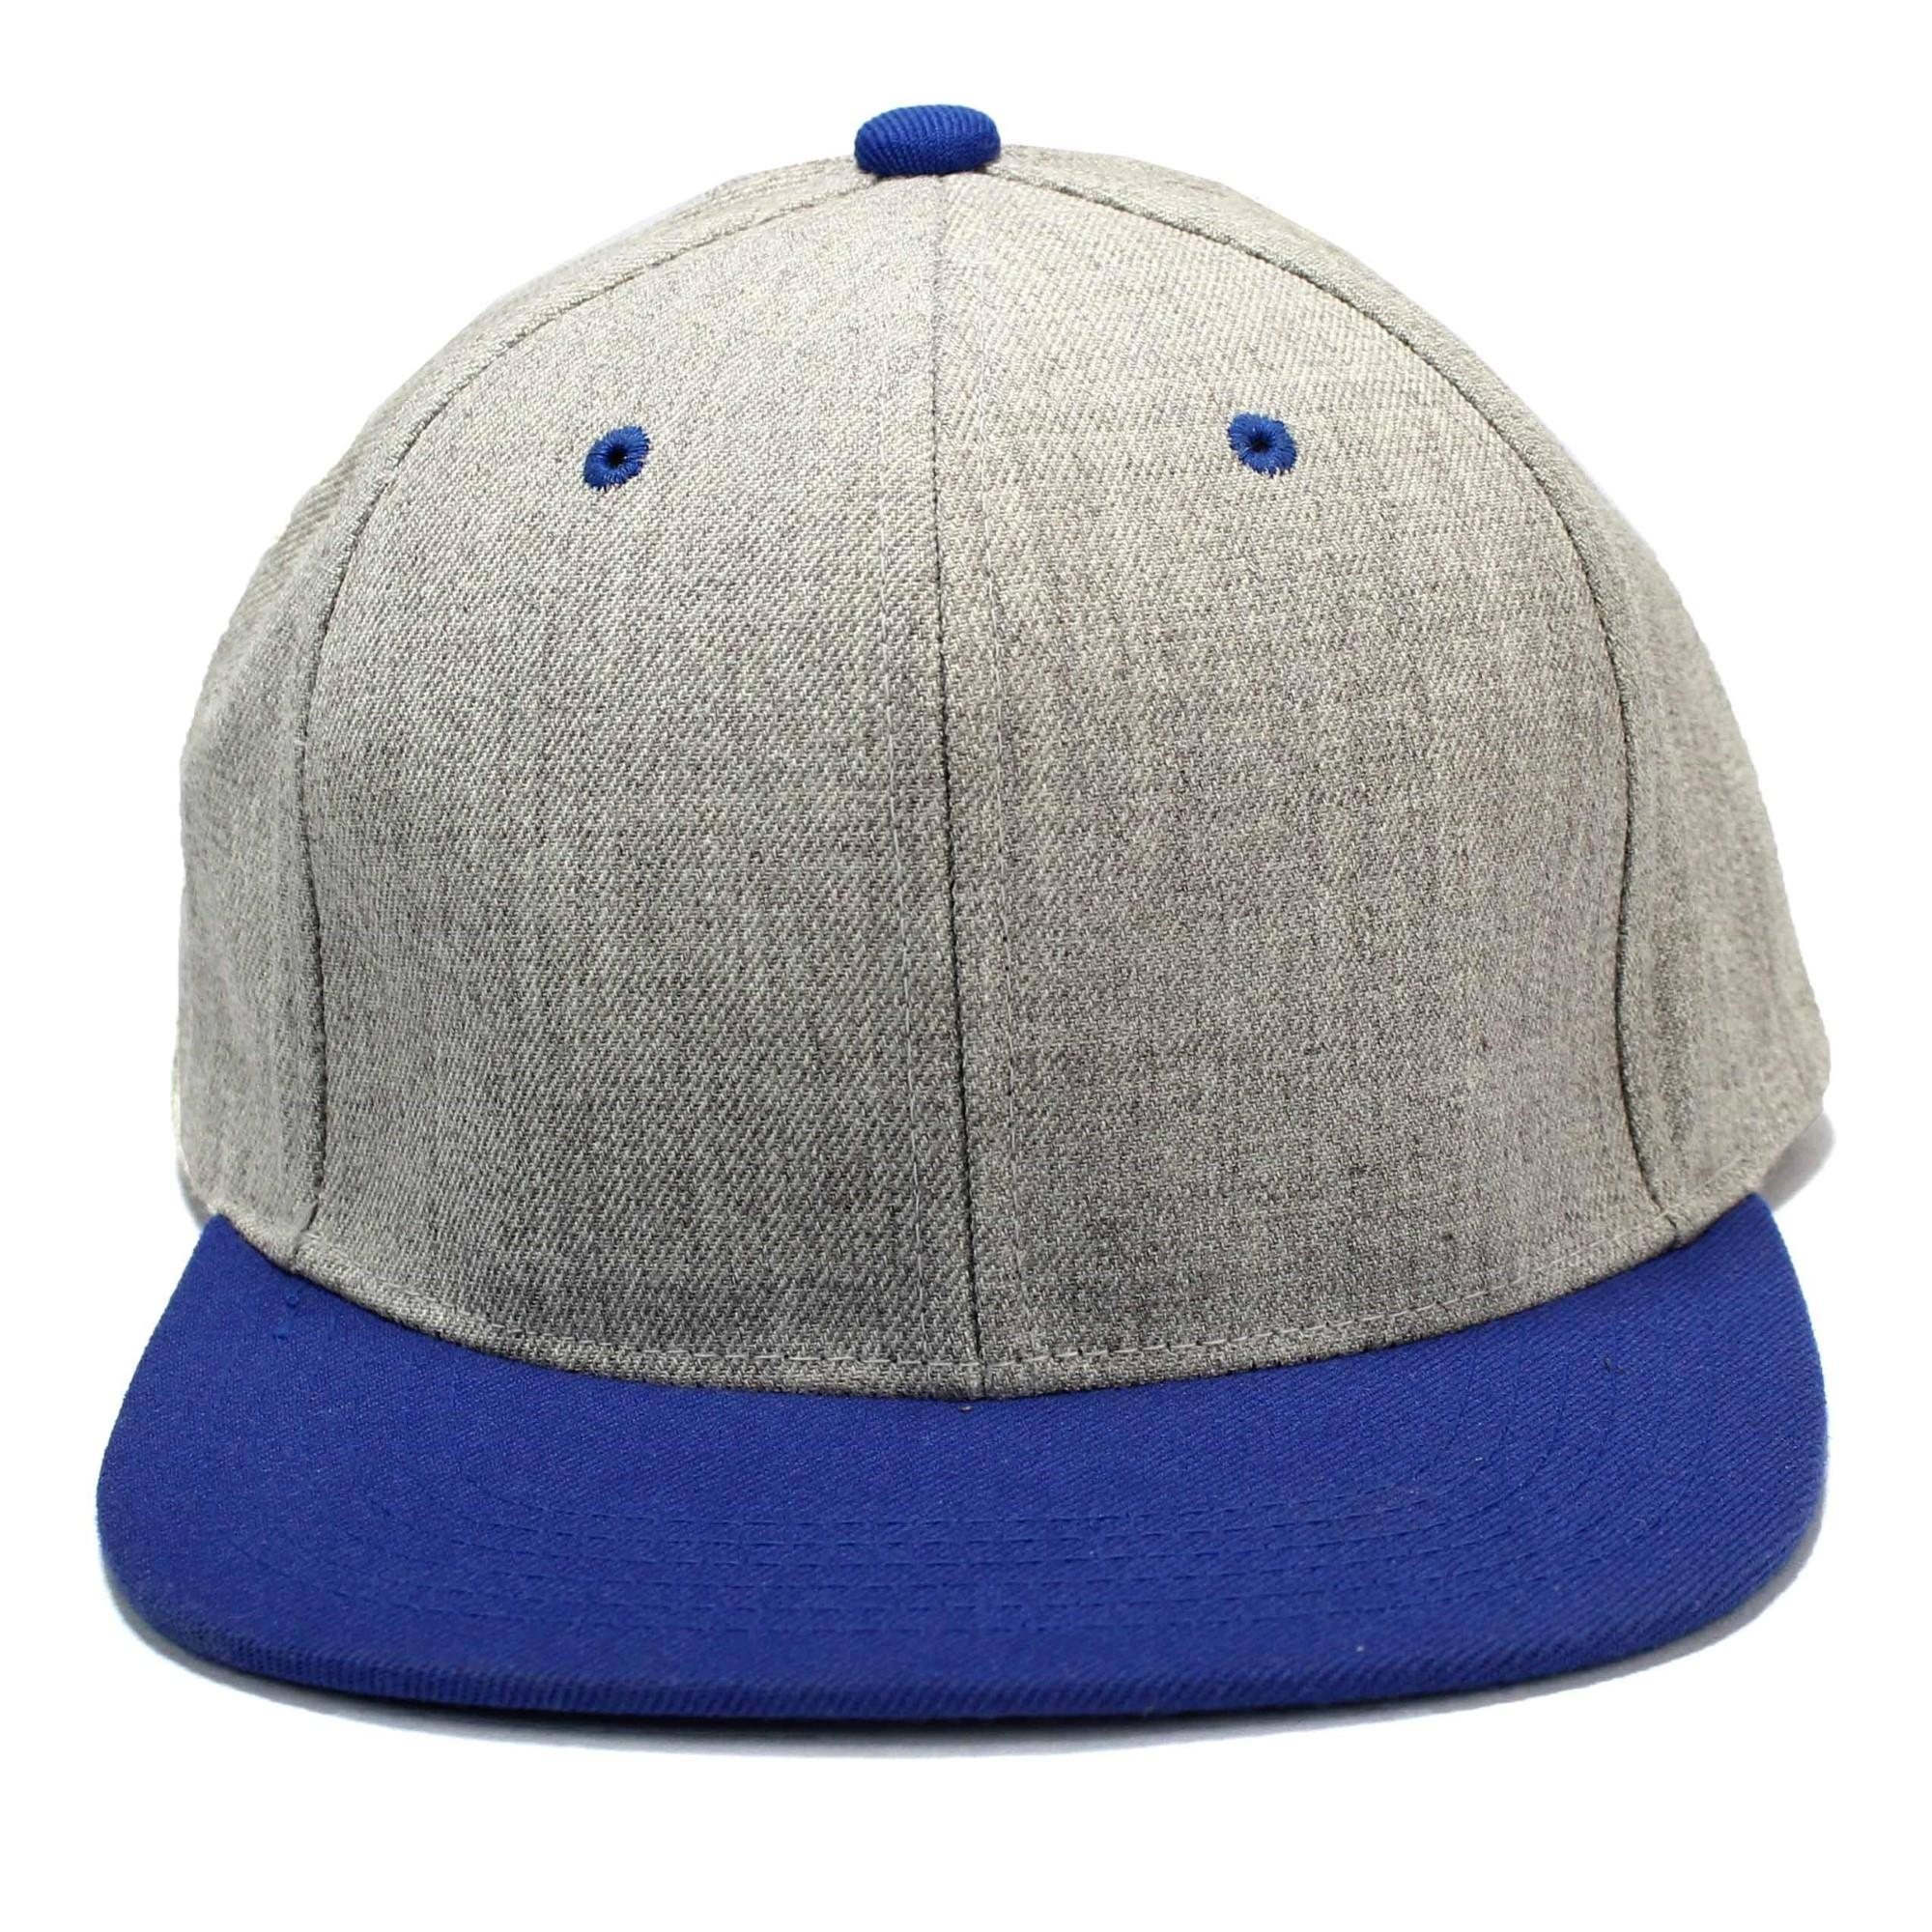 a2e7cb90f64 Buy Men s Hats Online At Best Price From Daraz.com.np